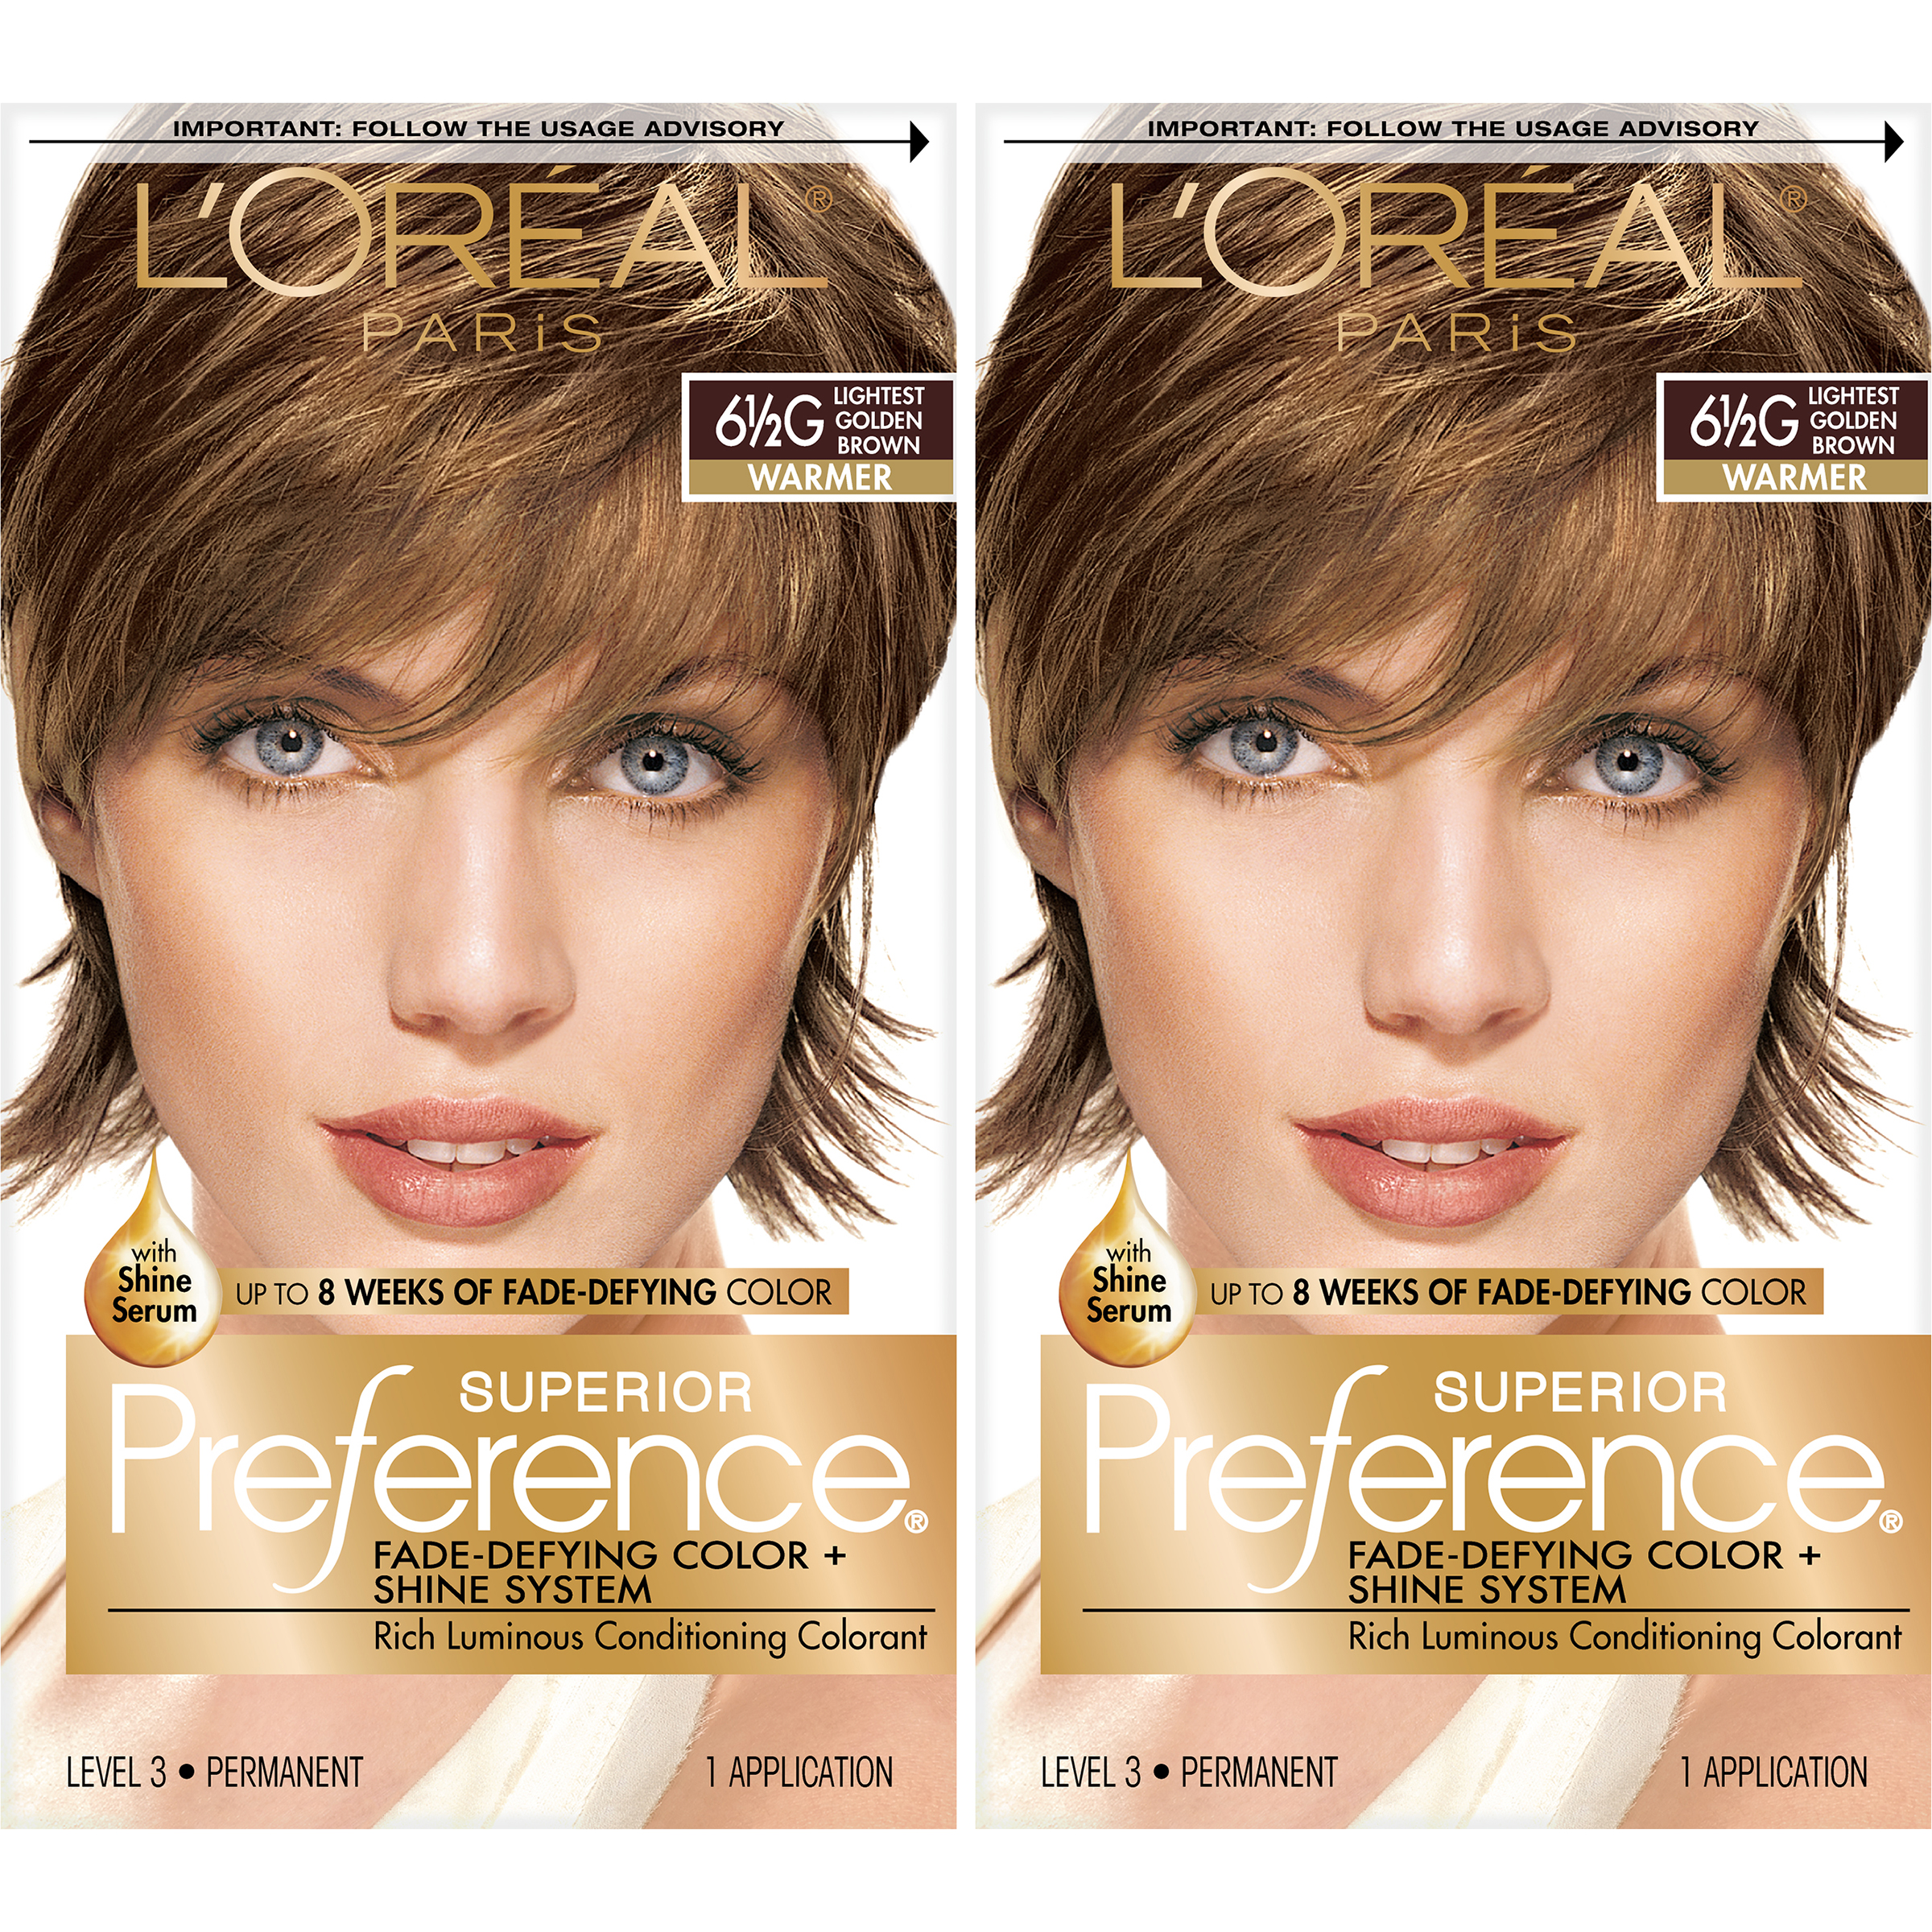 Loreal Paris Superior Preference Permanent Hair Color 6 5g Golden